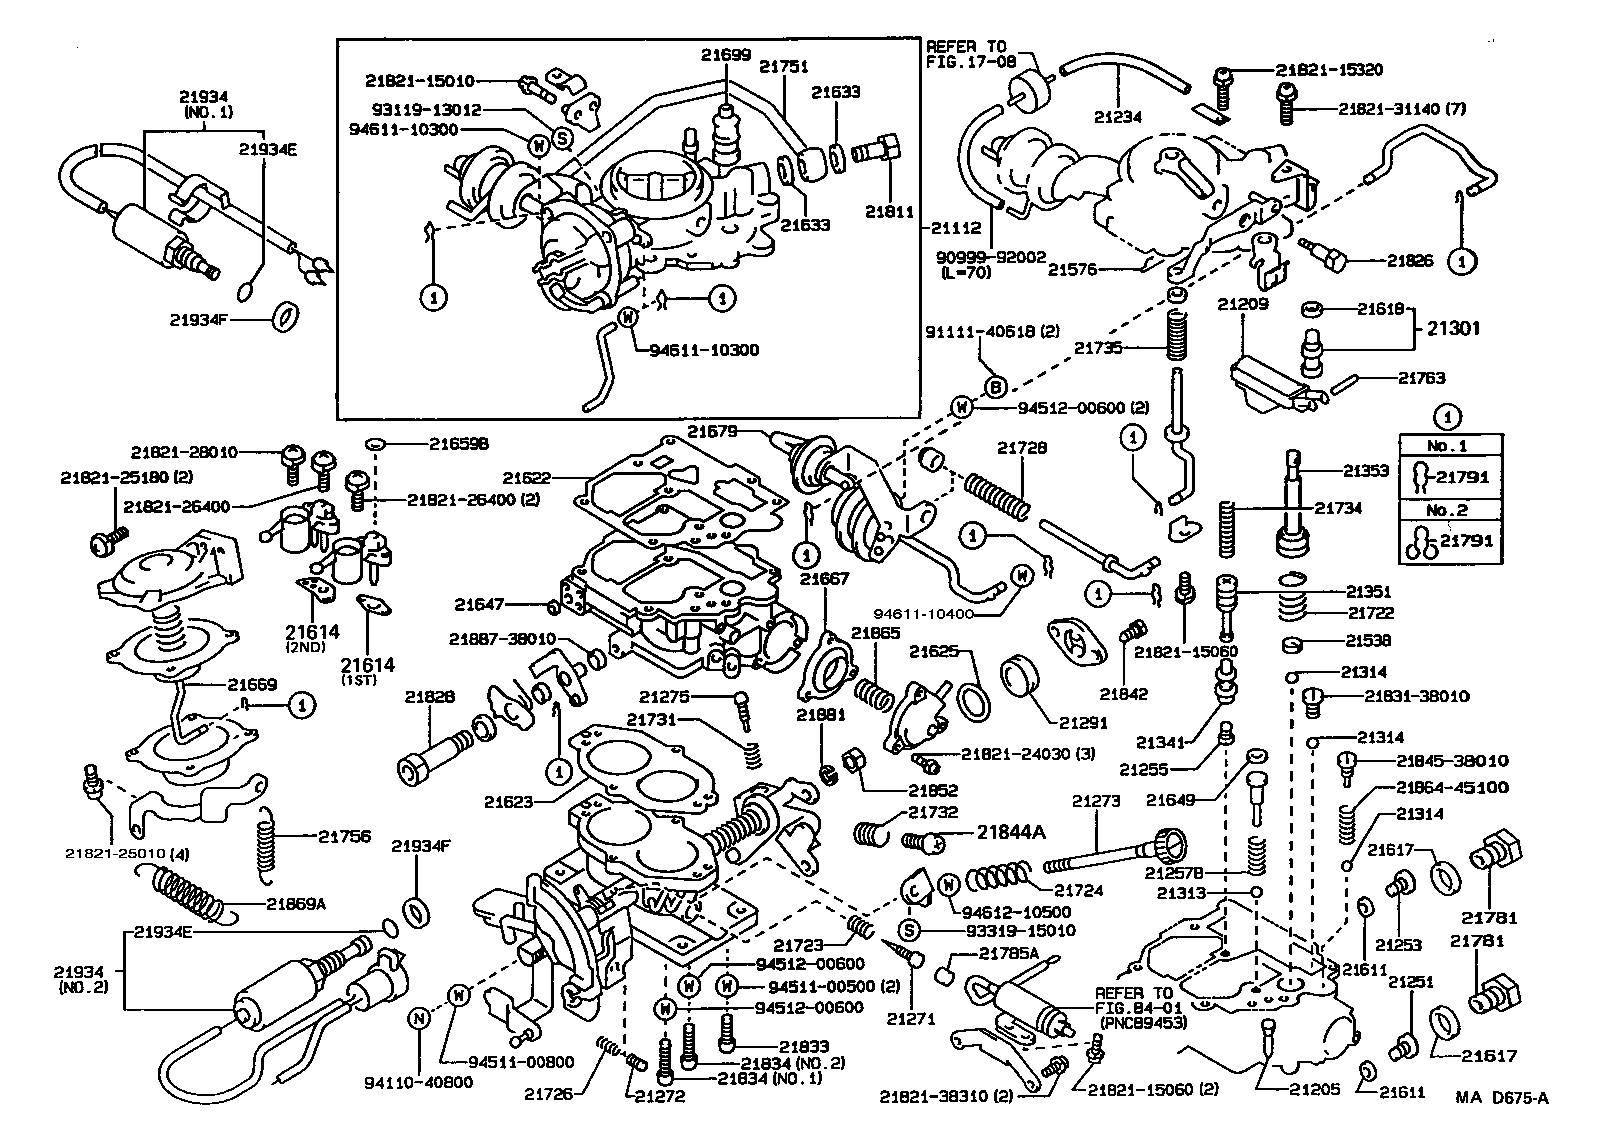 1987 toyota truck engine diagram wiring diagram center 1994 Toyota Corolla Engine Diagram